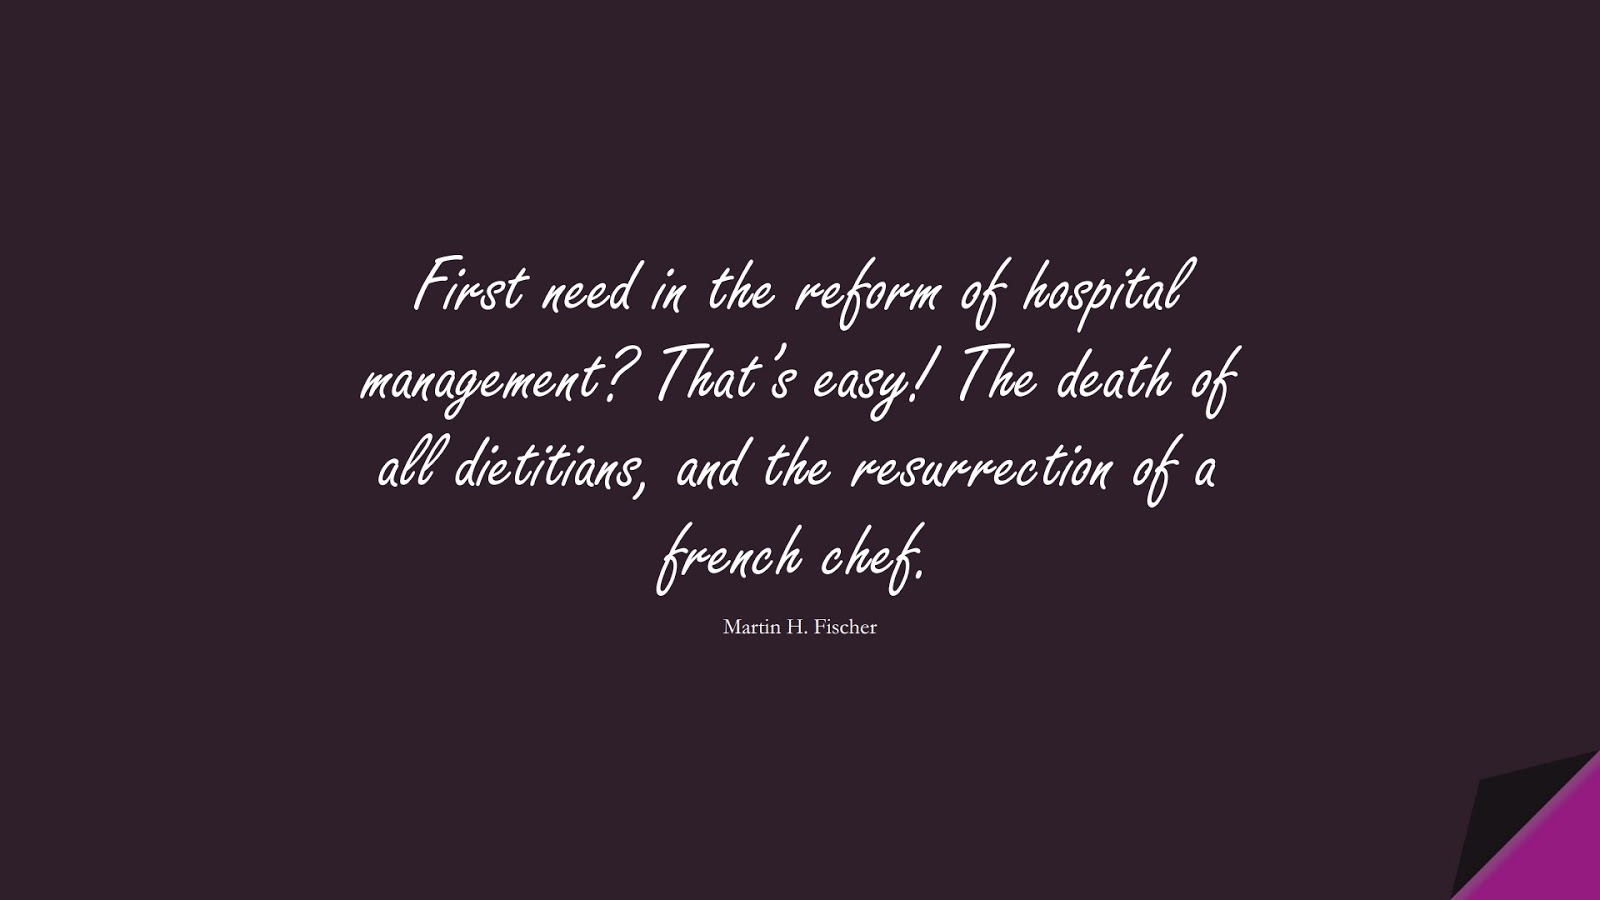 First need in the reform of hospital management? That's easy! The death of all dietitians, and the resurrection of a french chef. (Martin H. Fischer);  #HealthQuotes